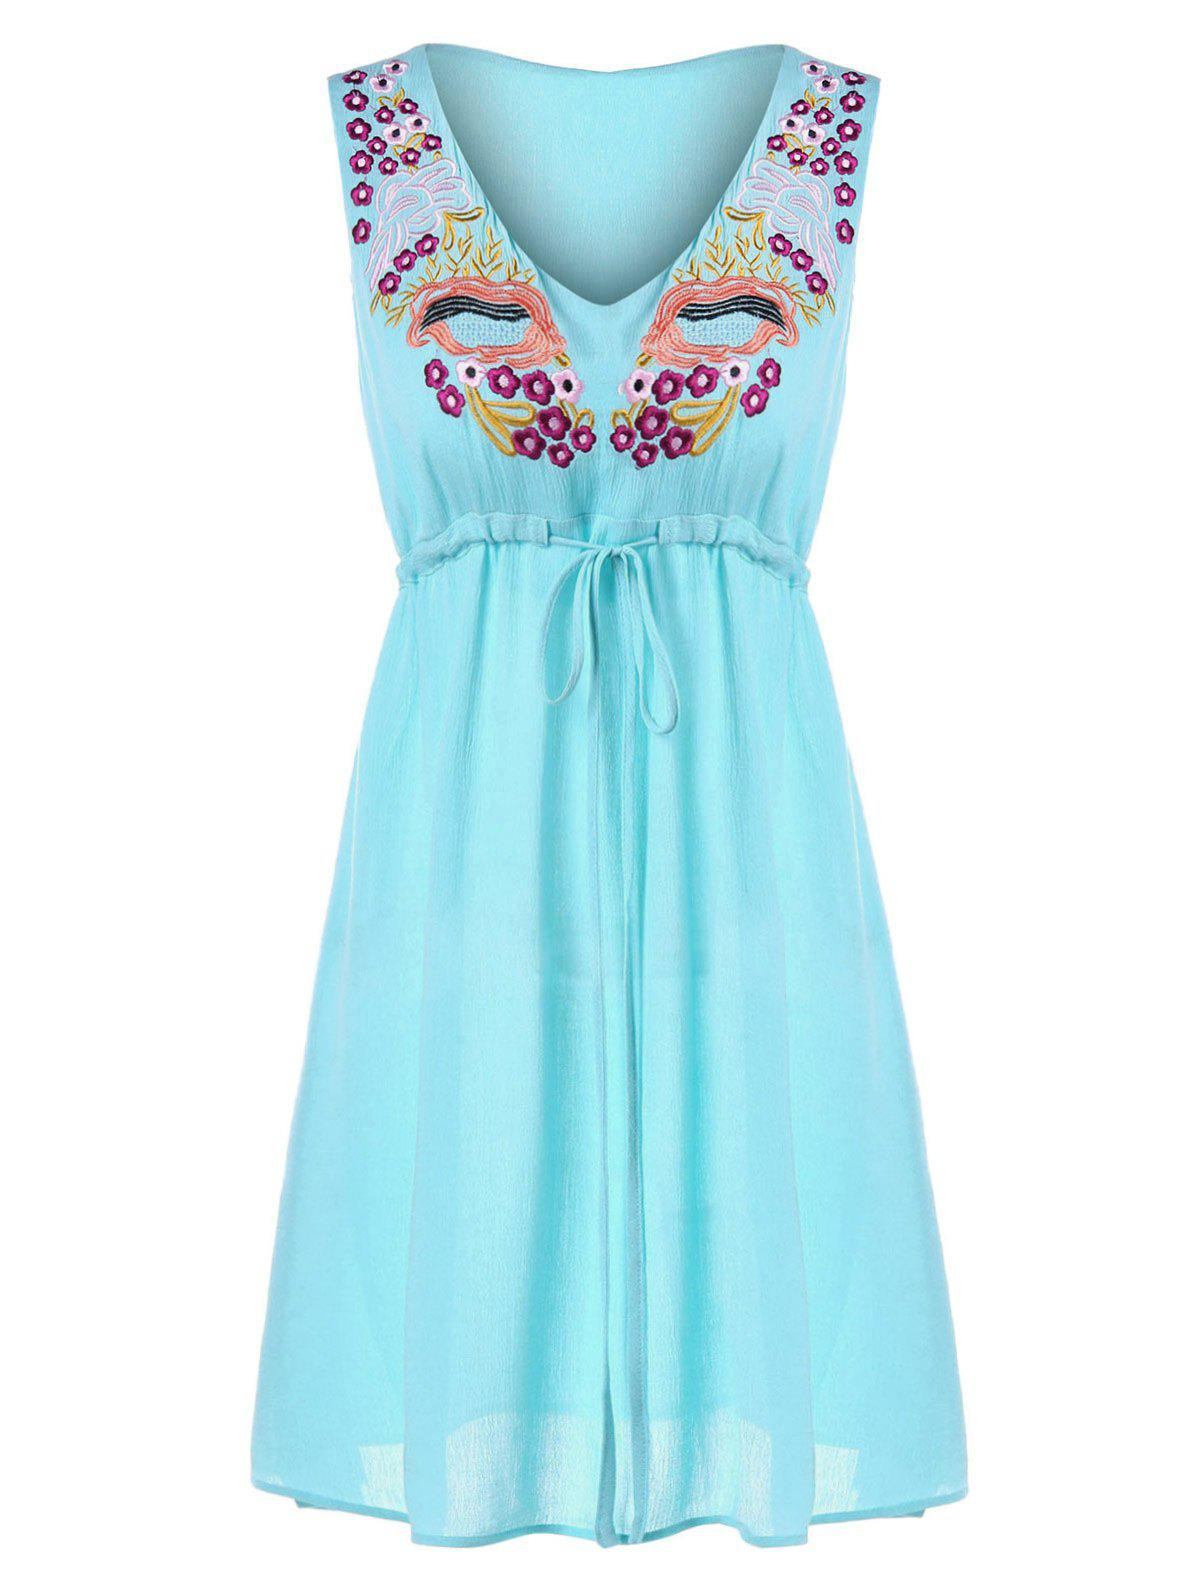 Buy Embroidered Mini Chiffon Dress